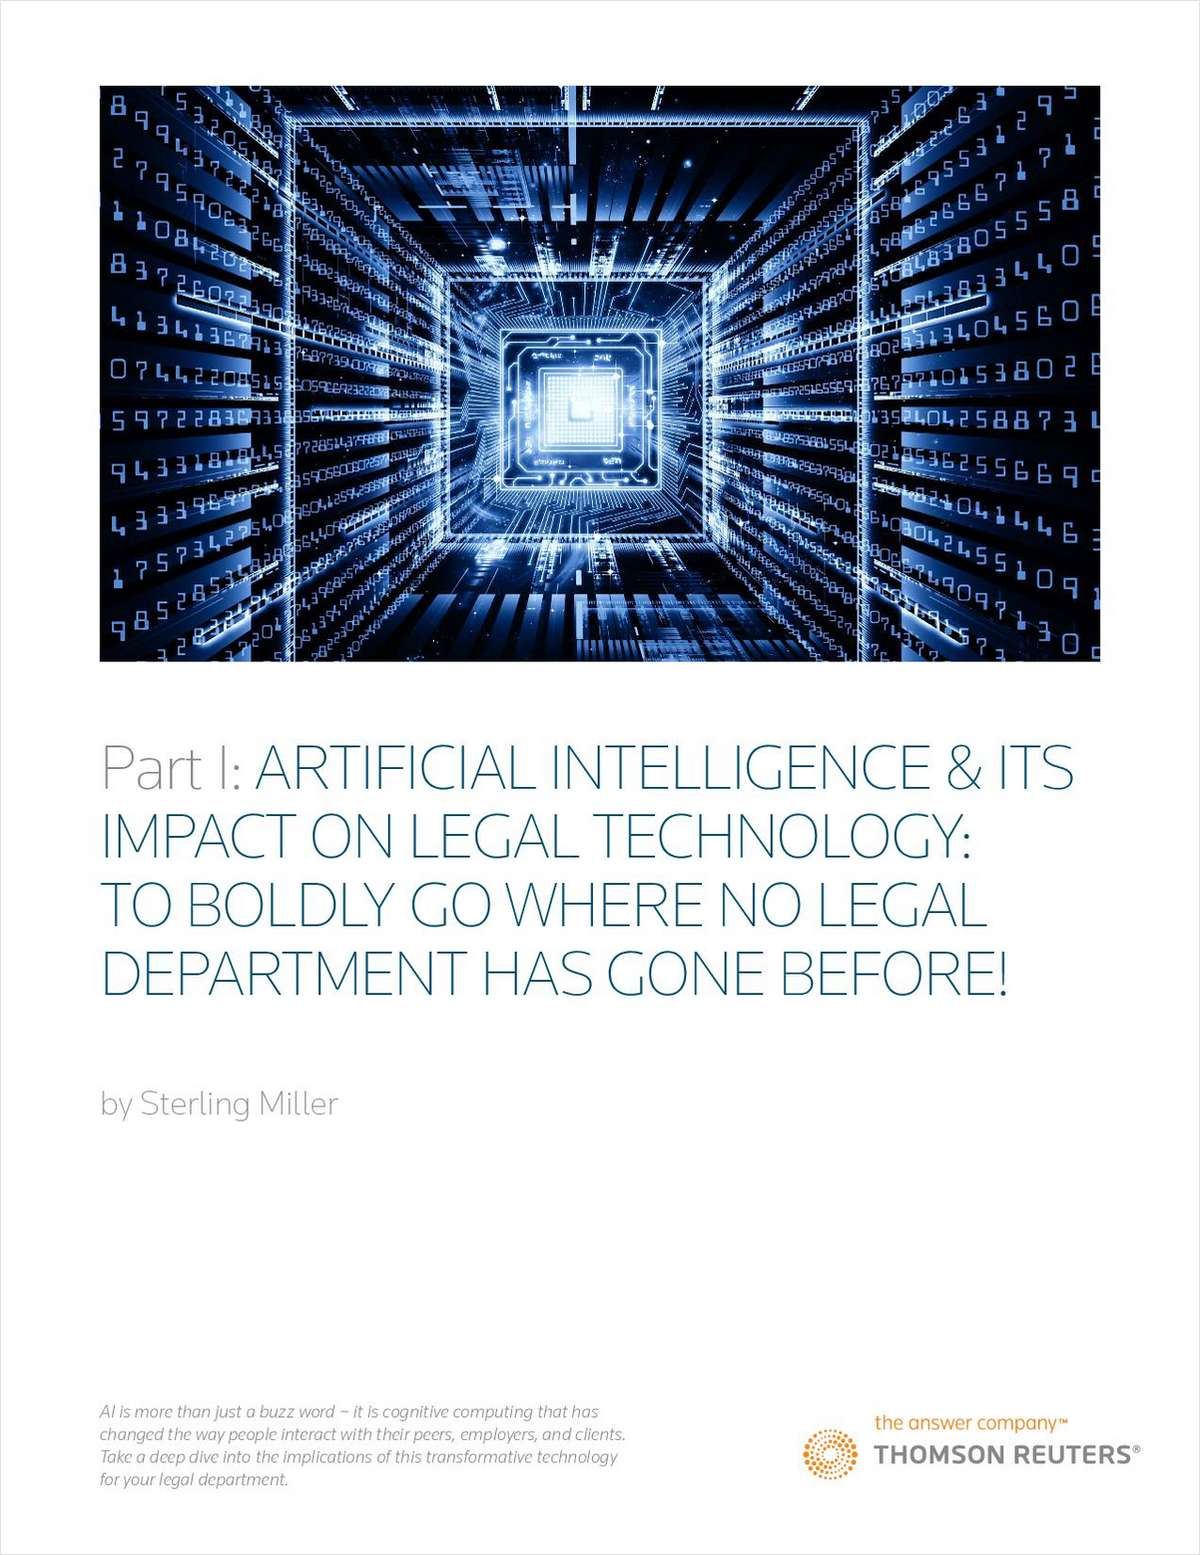 Artificial Intelligence and Legal Technology: To Boldly Go Where No Legal Department Has Gone Before!